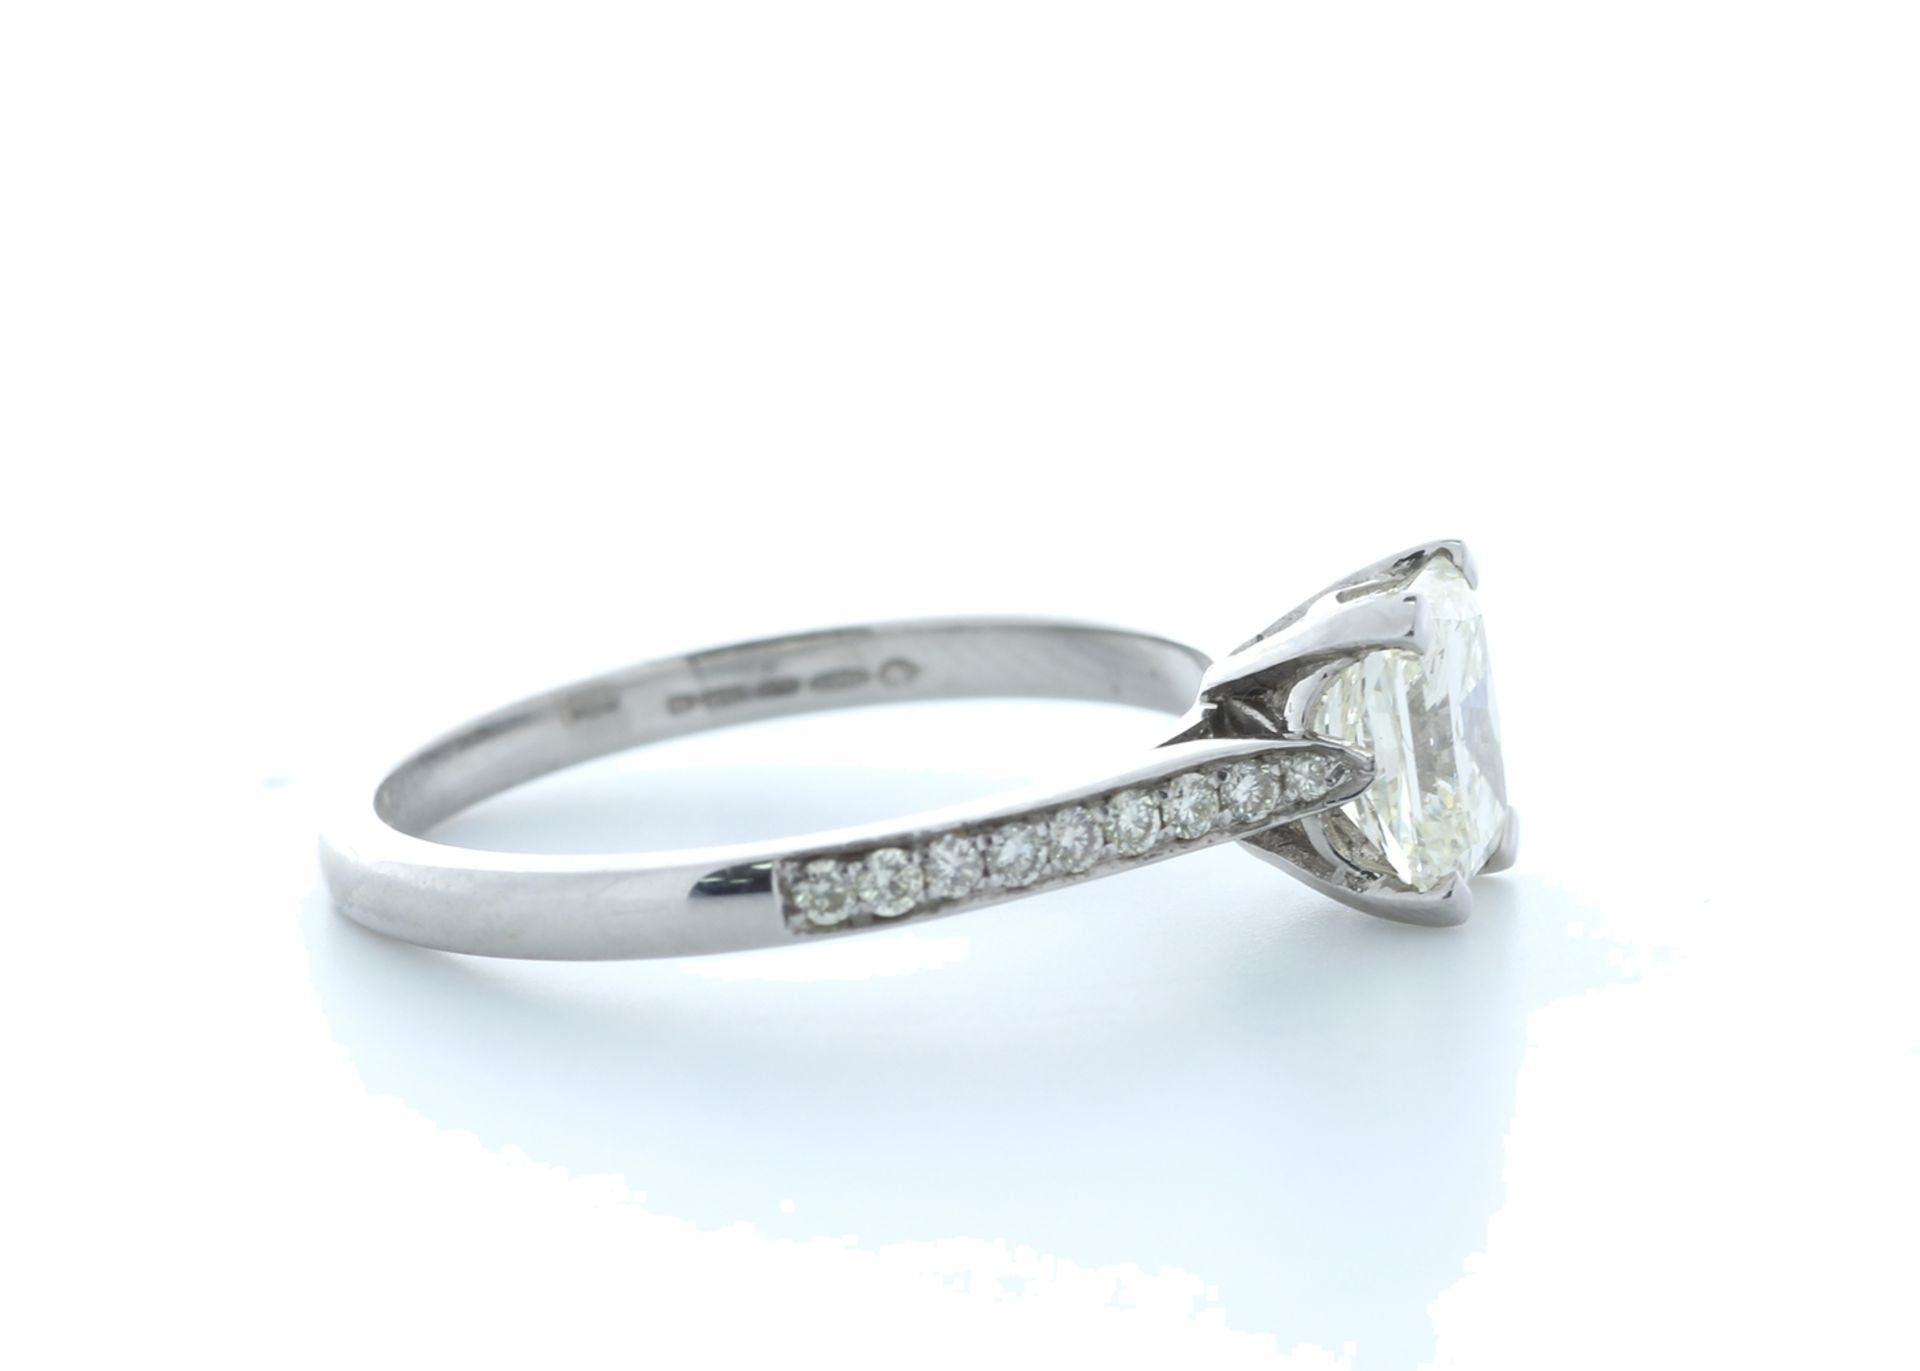 18ct White Gold Radiant Cut Diamond Ring 1.23 (1.08) Carats - Valued by IDI £19,500.00 - 18ct - Image 4 of 5